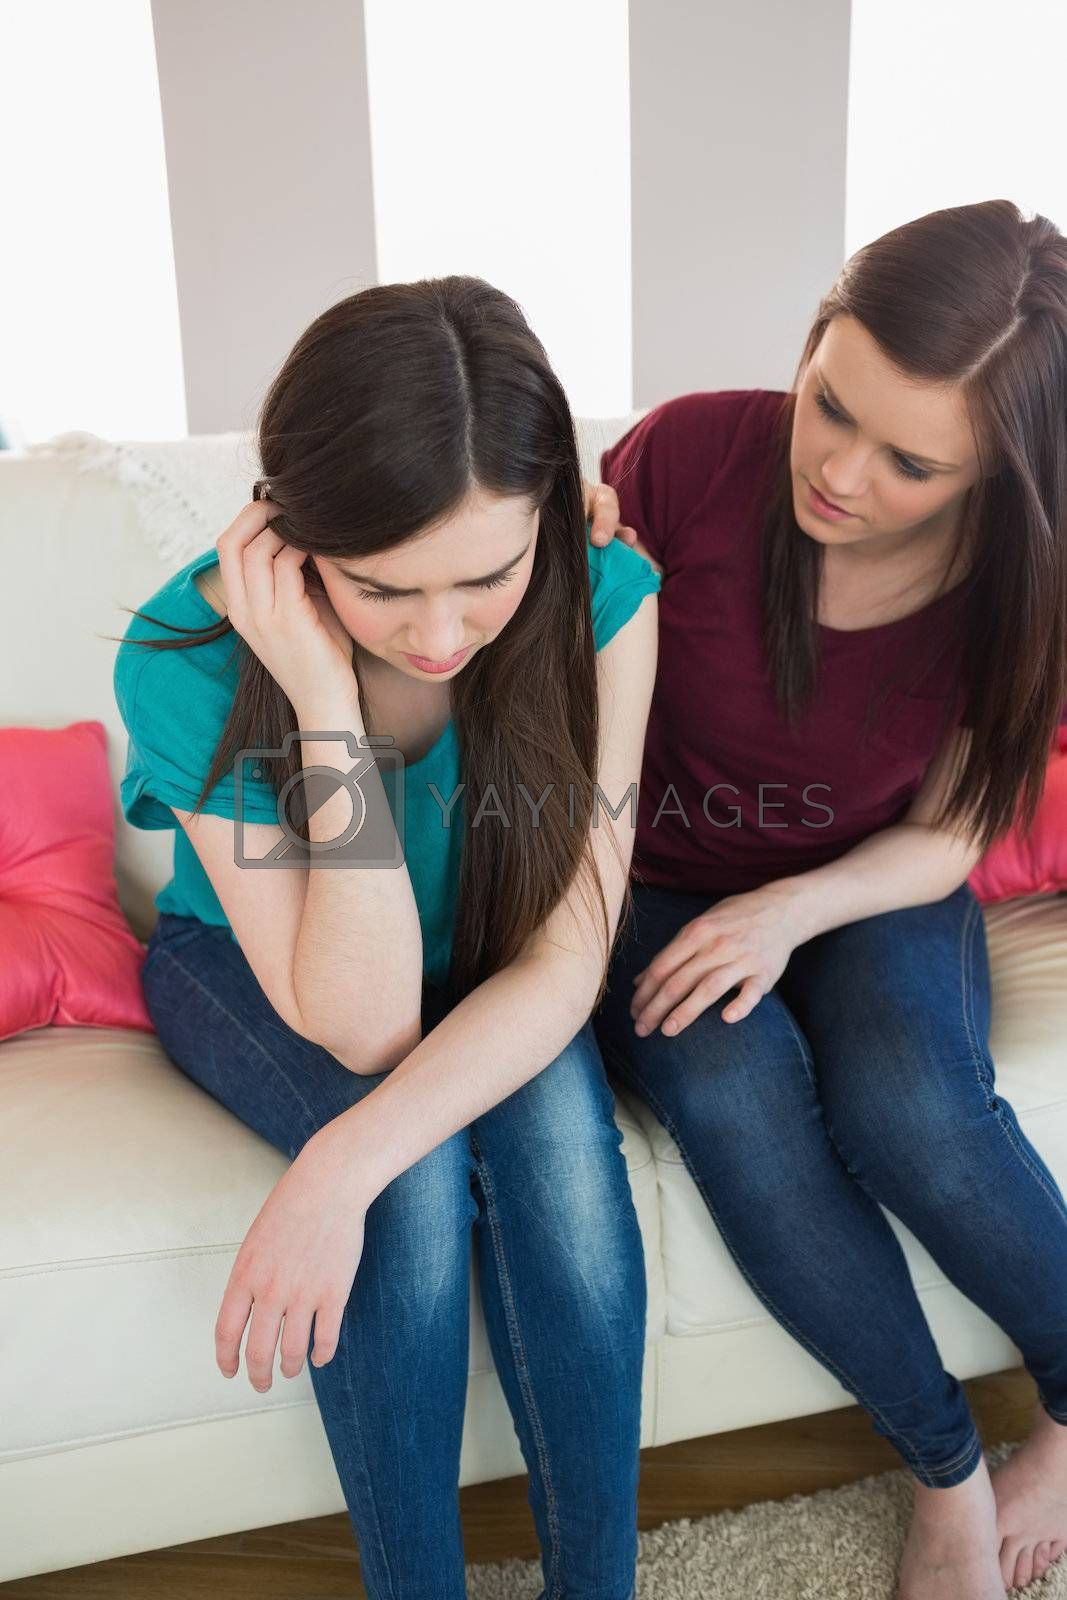 Girl comforting her upset crying friend on the couch by Wavebreakmedia